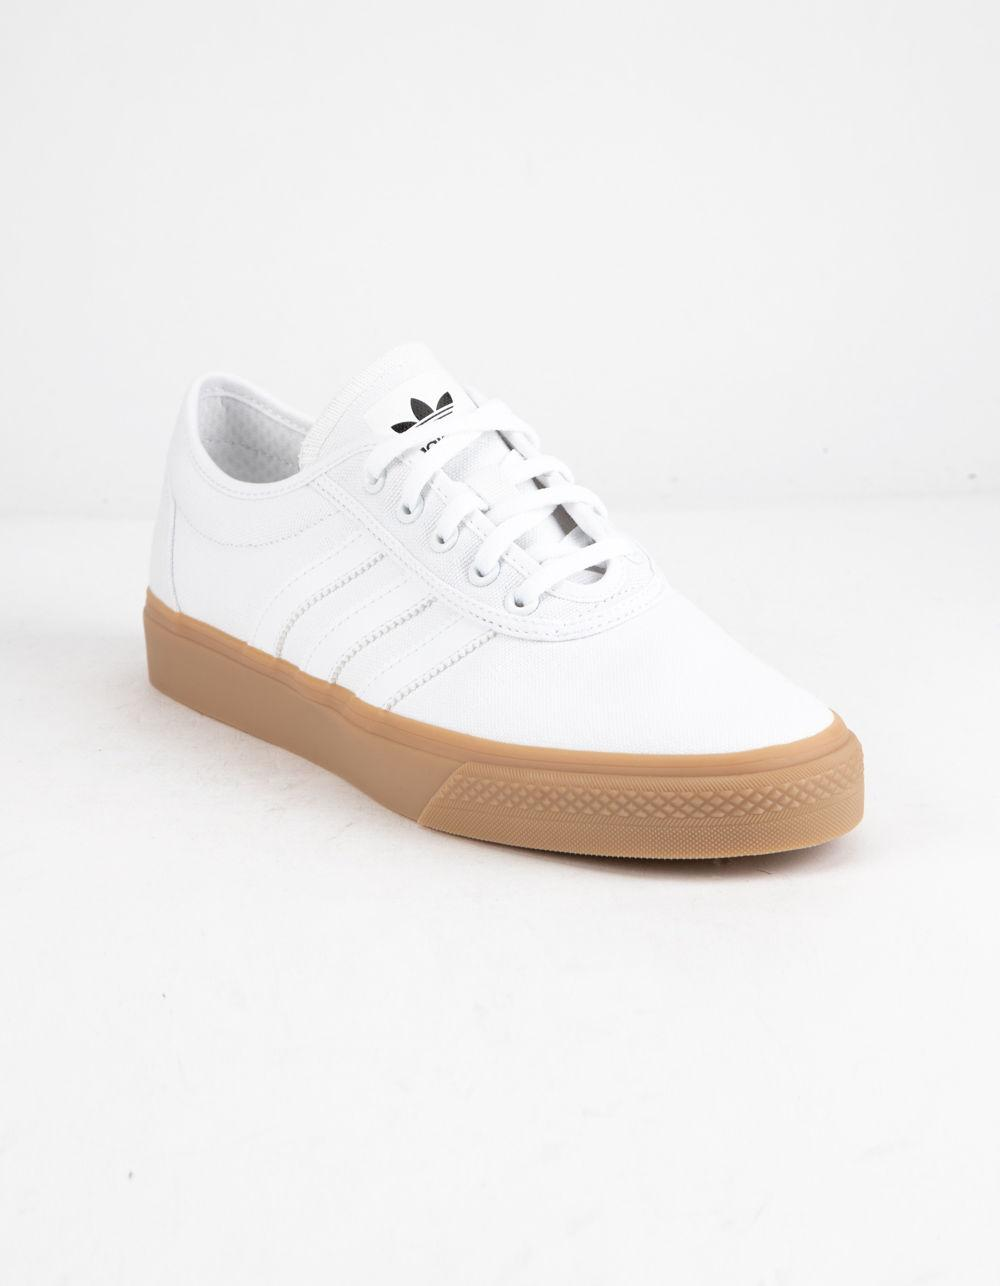 5c9b7e210d5 Lyst - adidas Adiease White Shoes in White for Men